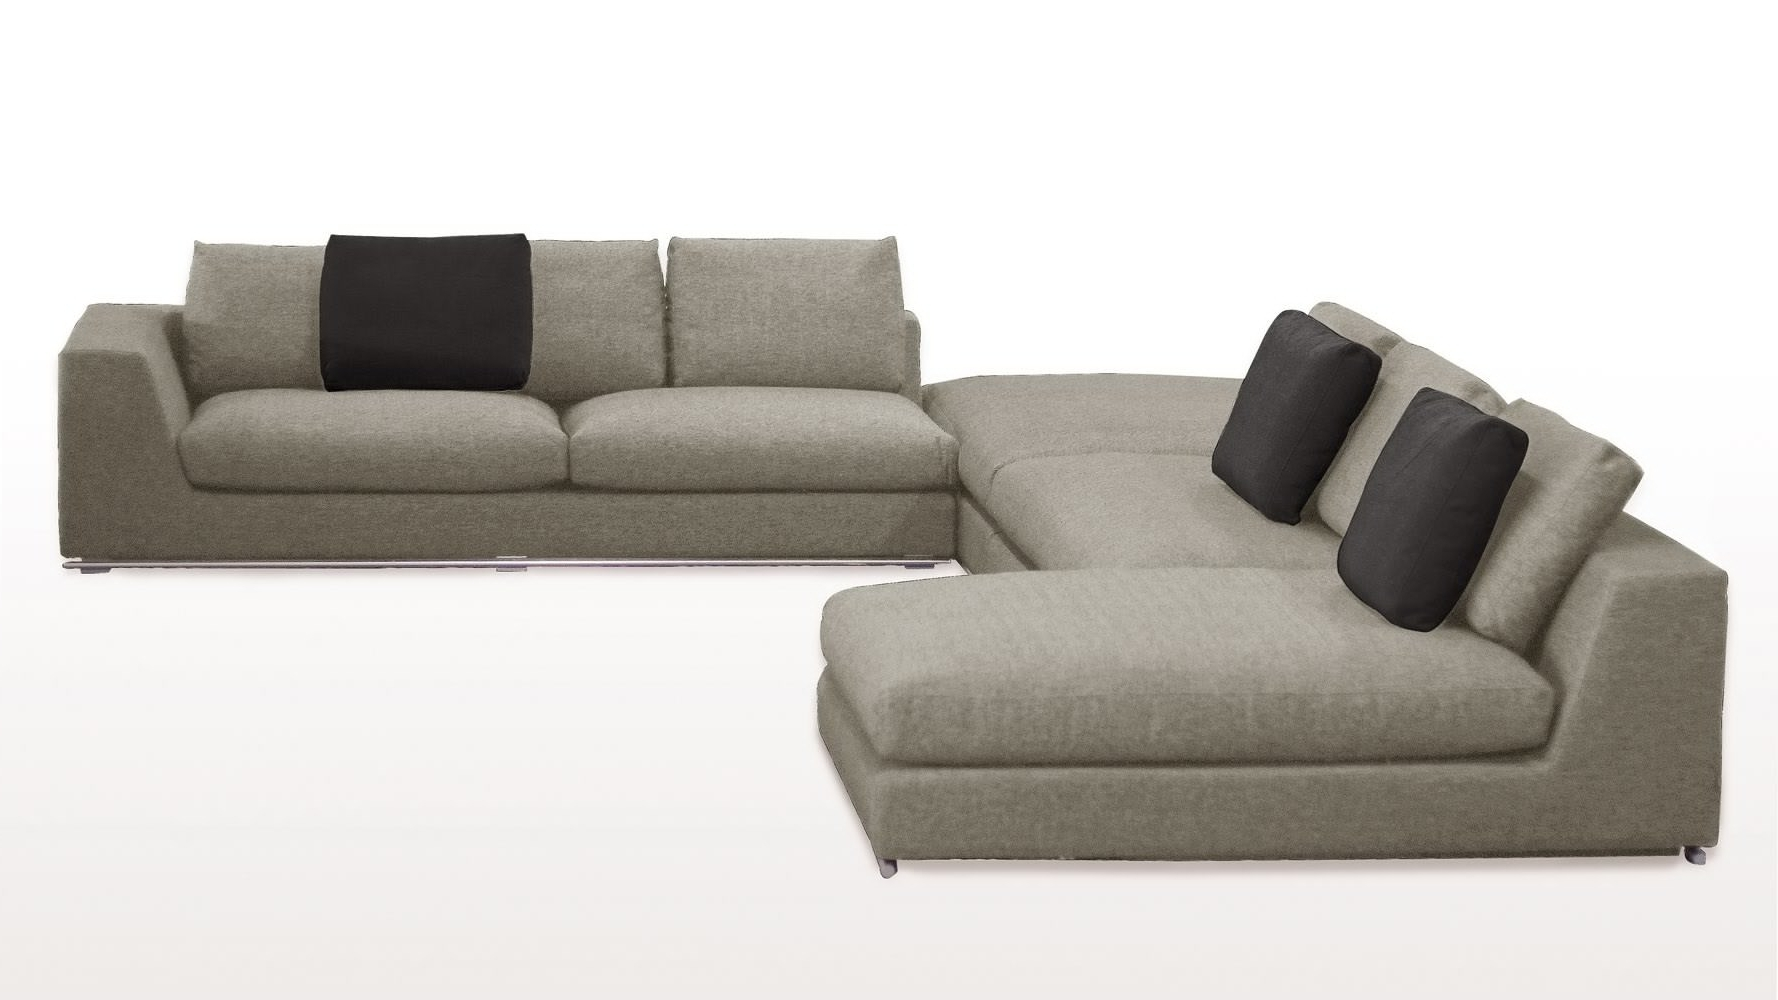 Most Current Small Armless Sofas Regarding Sectional Sofa Design: Armless Sectional Sofa Covers Small Spaces (View 5 of 20)